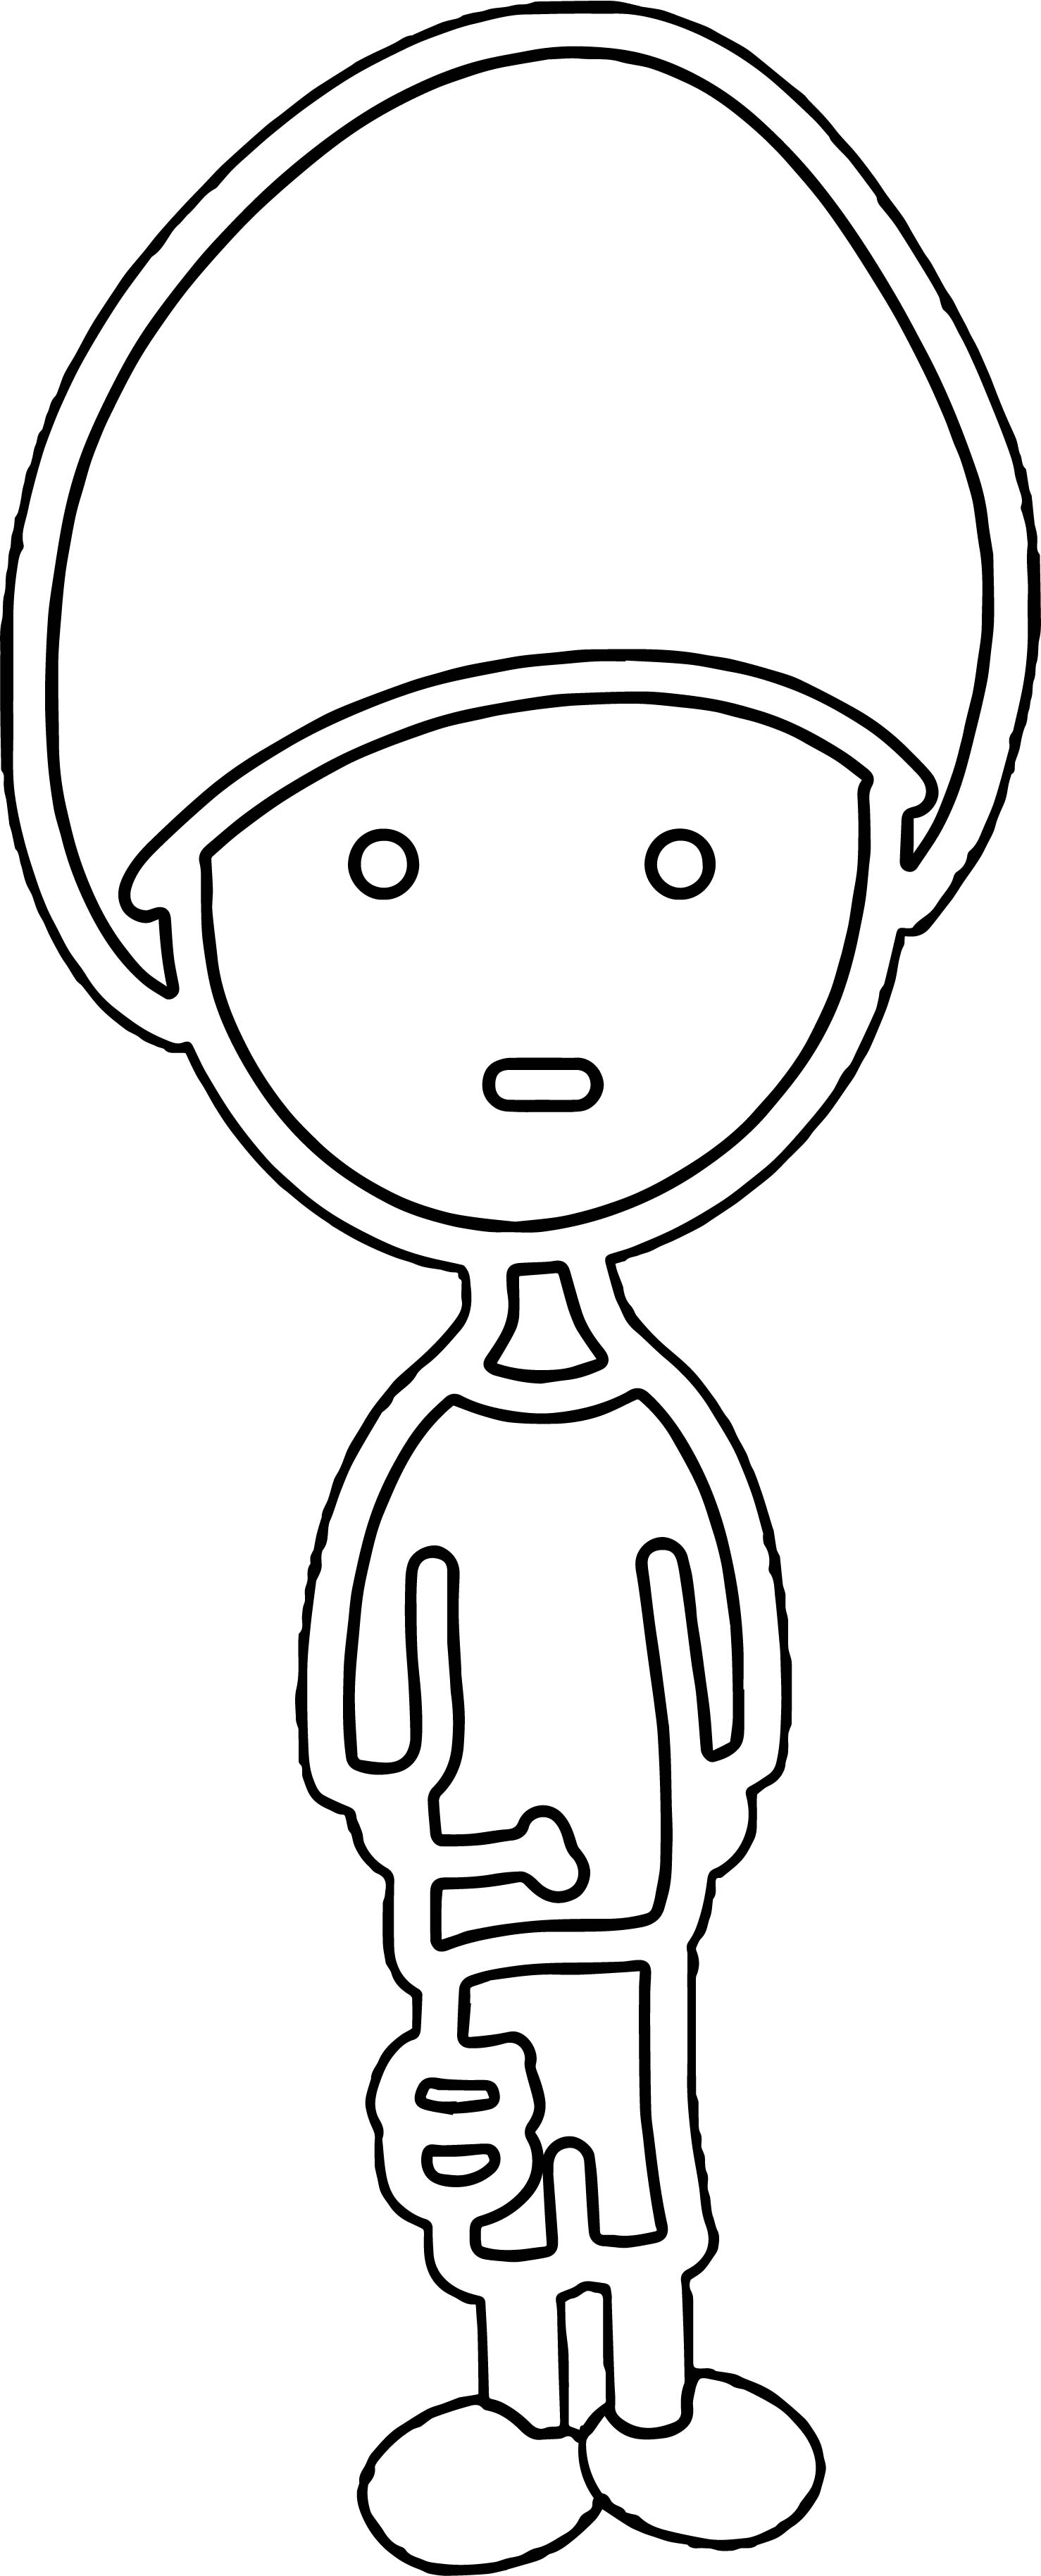 Outline boy coloring page for Outline of a boy and girl coloring pages